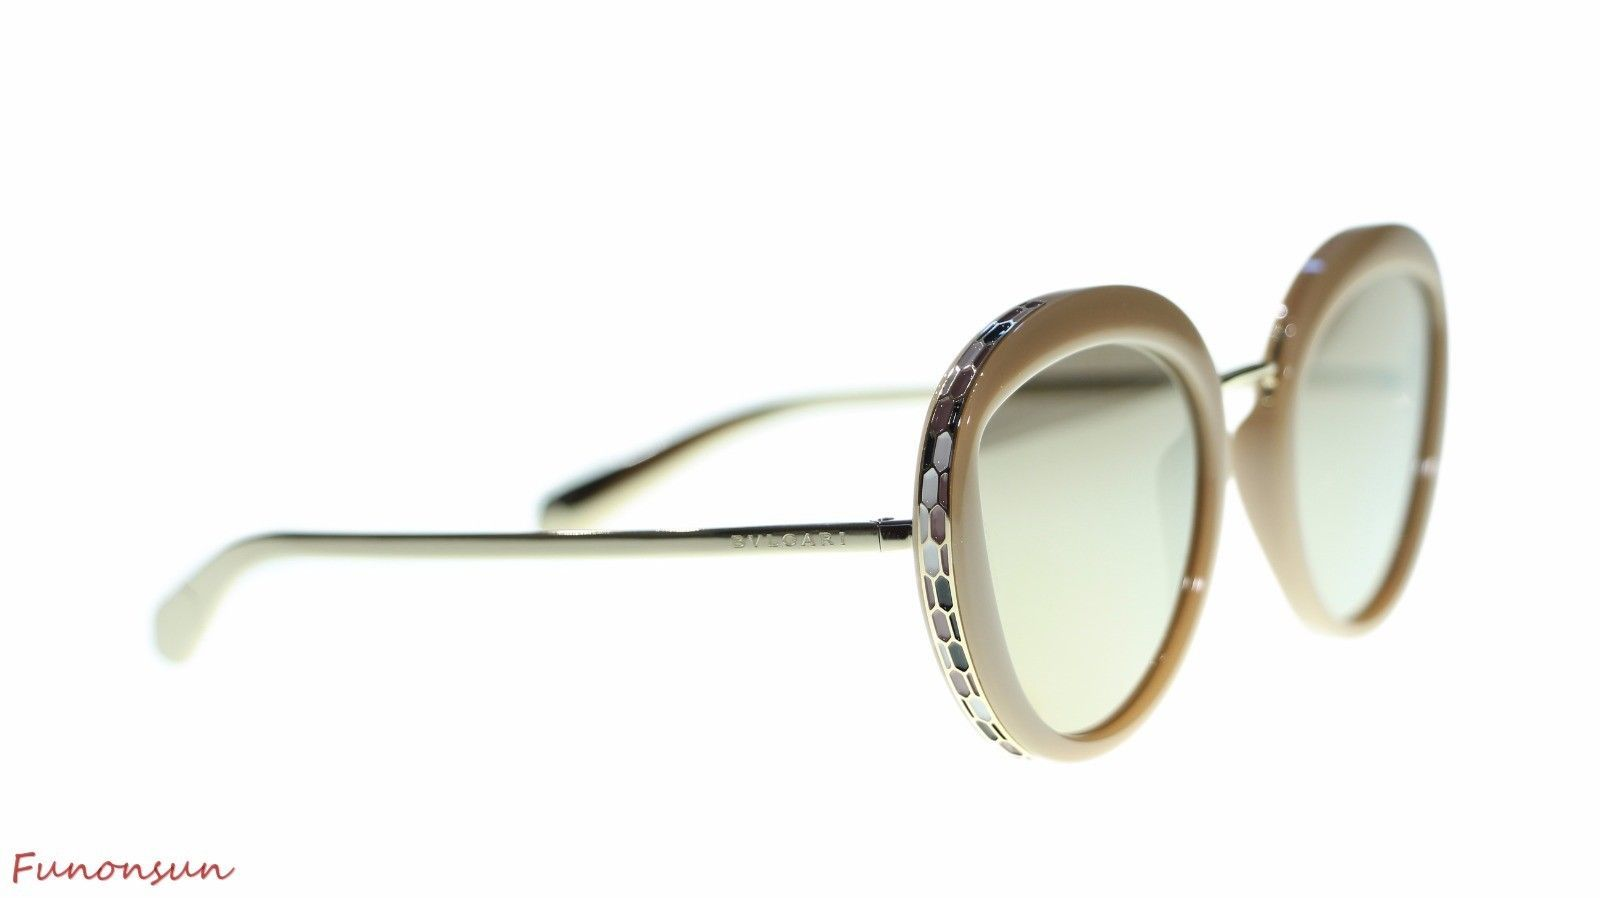 ba1cfc4ebd08e BVLGARI Women s Round Sunglasses BV8191 11215A Beige Brown Mirror Gold Lens  52mm